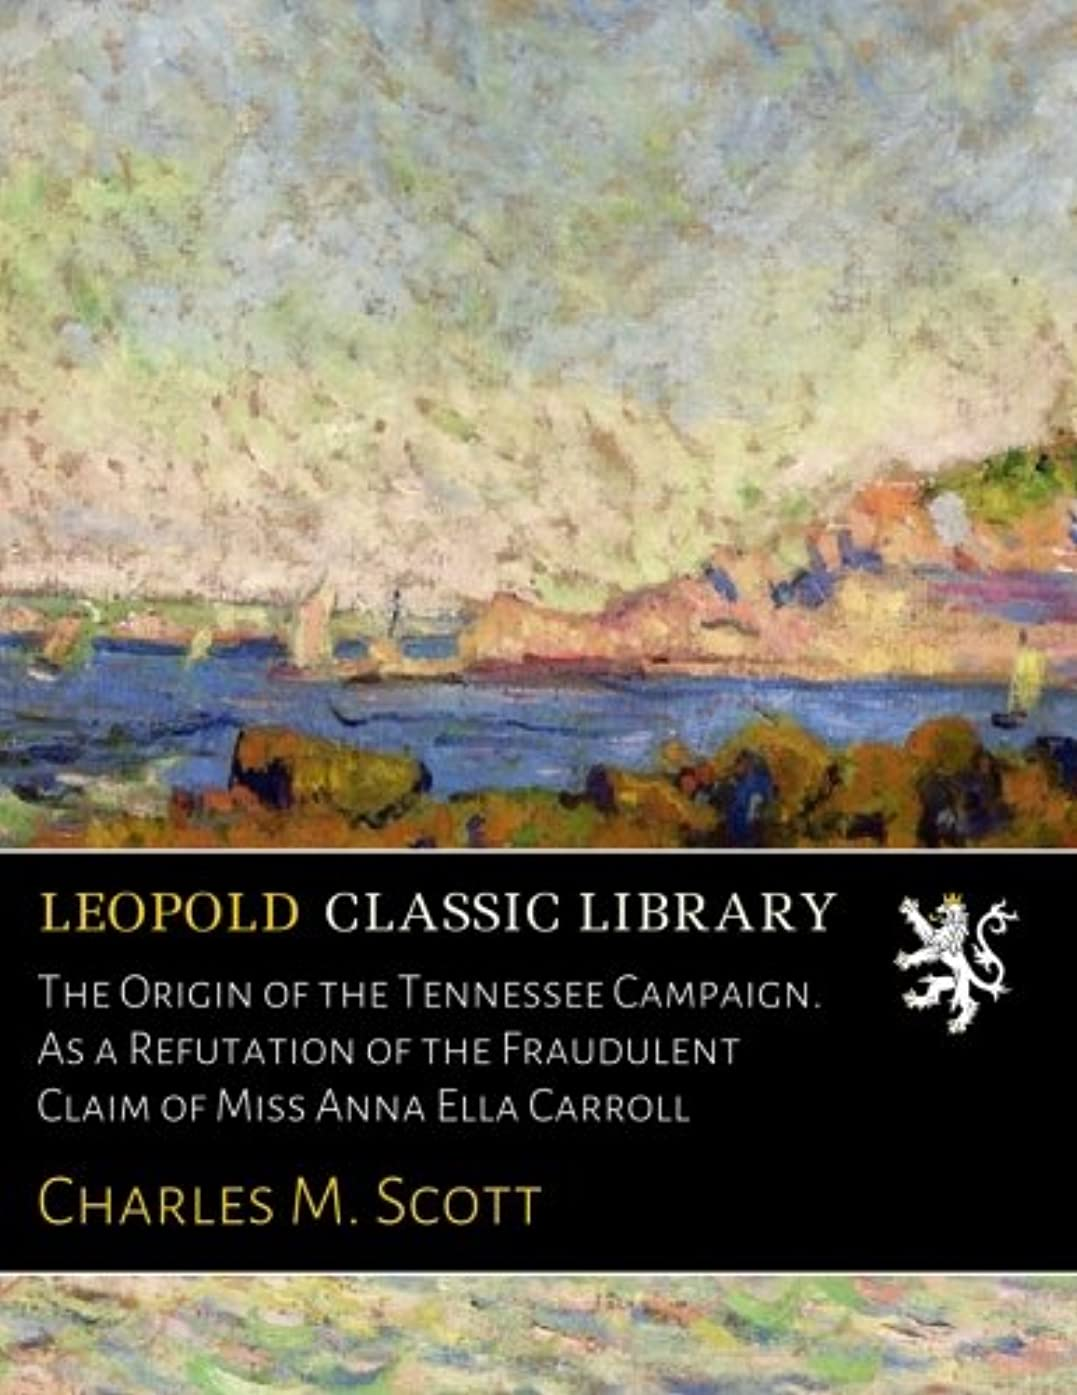 The Origin of the Tennessee Campaign. As a Refutation of the Fraudulent Claim of Miss Anna Ella Carroll